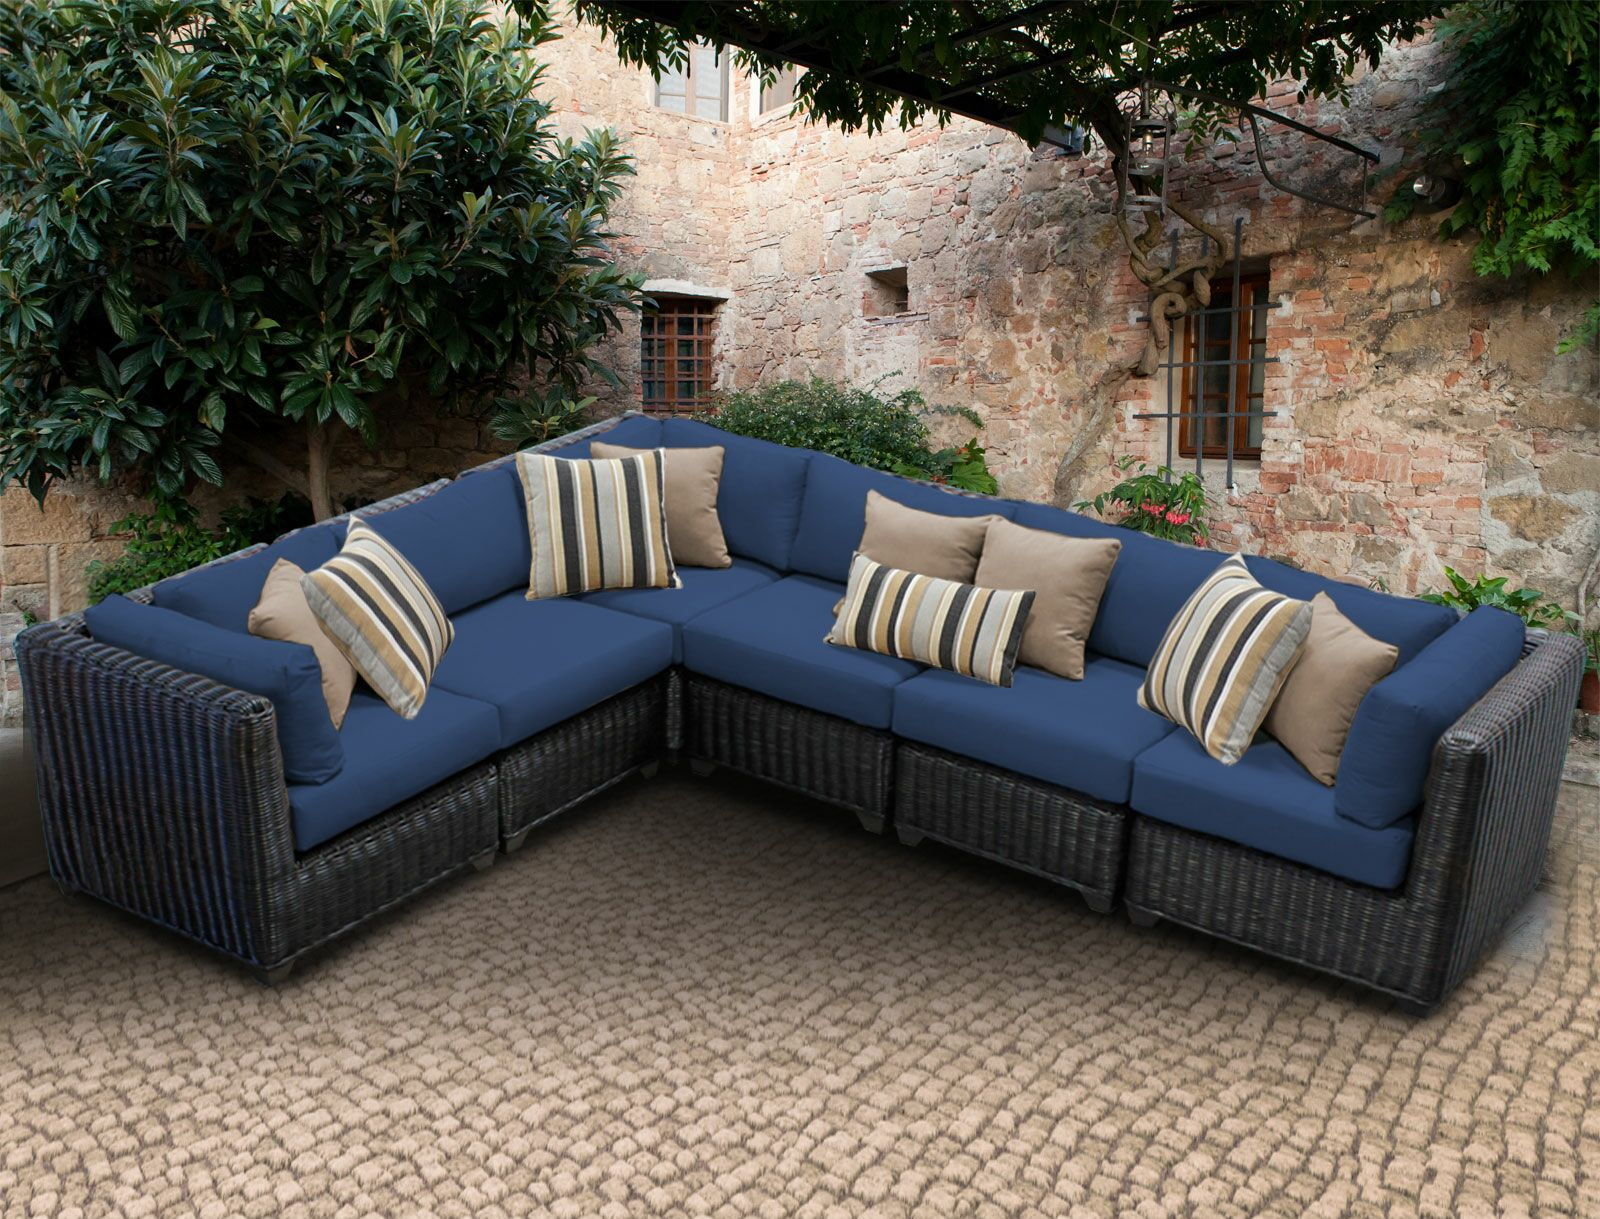 Eldredge Sofa With Cushions Color: Navy